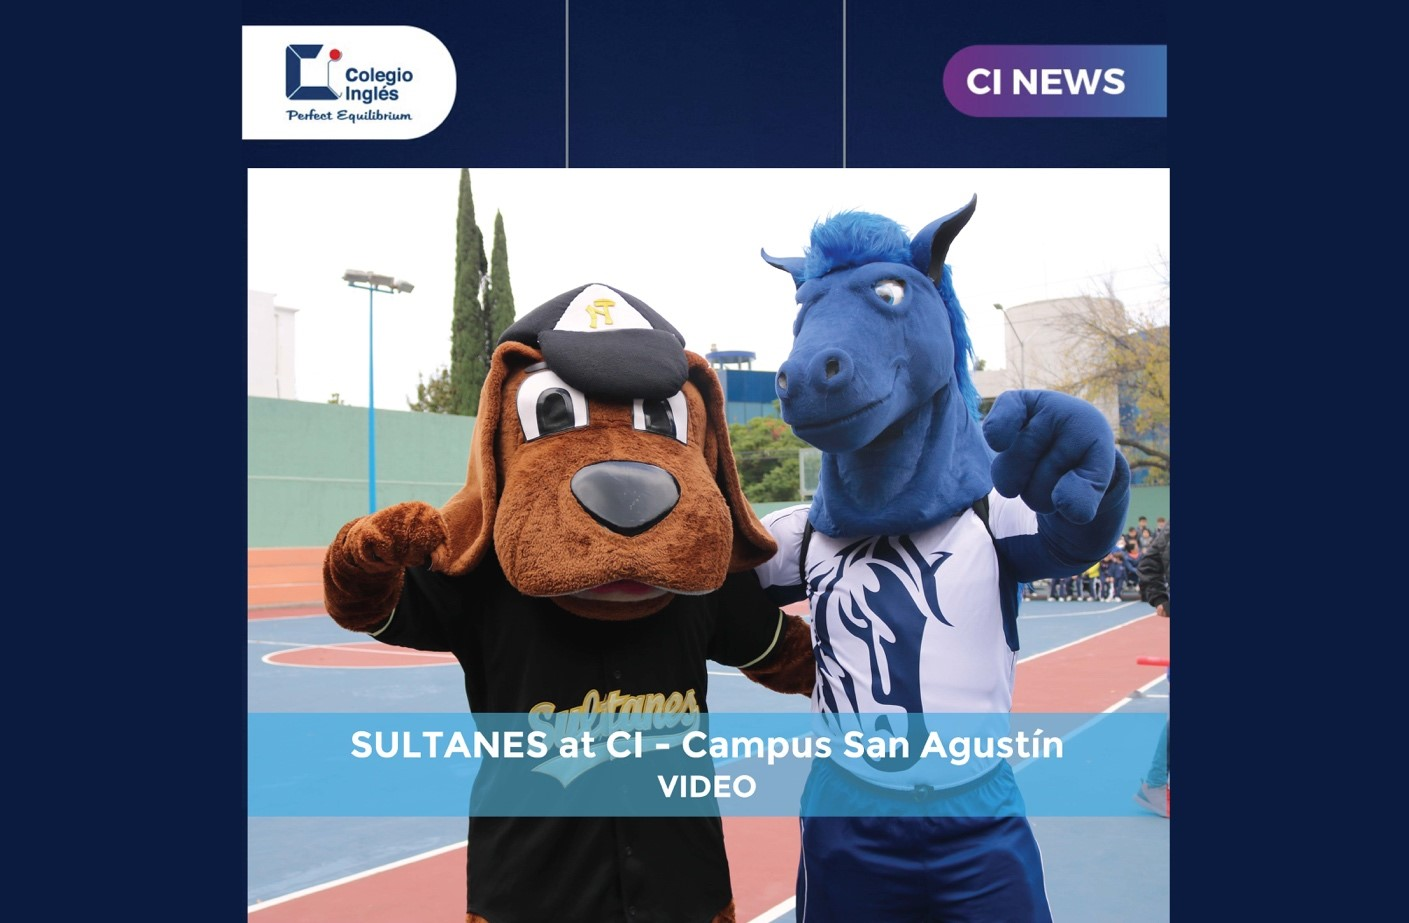 Sultanes at CI